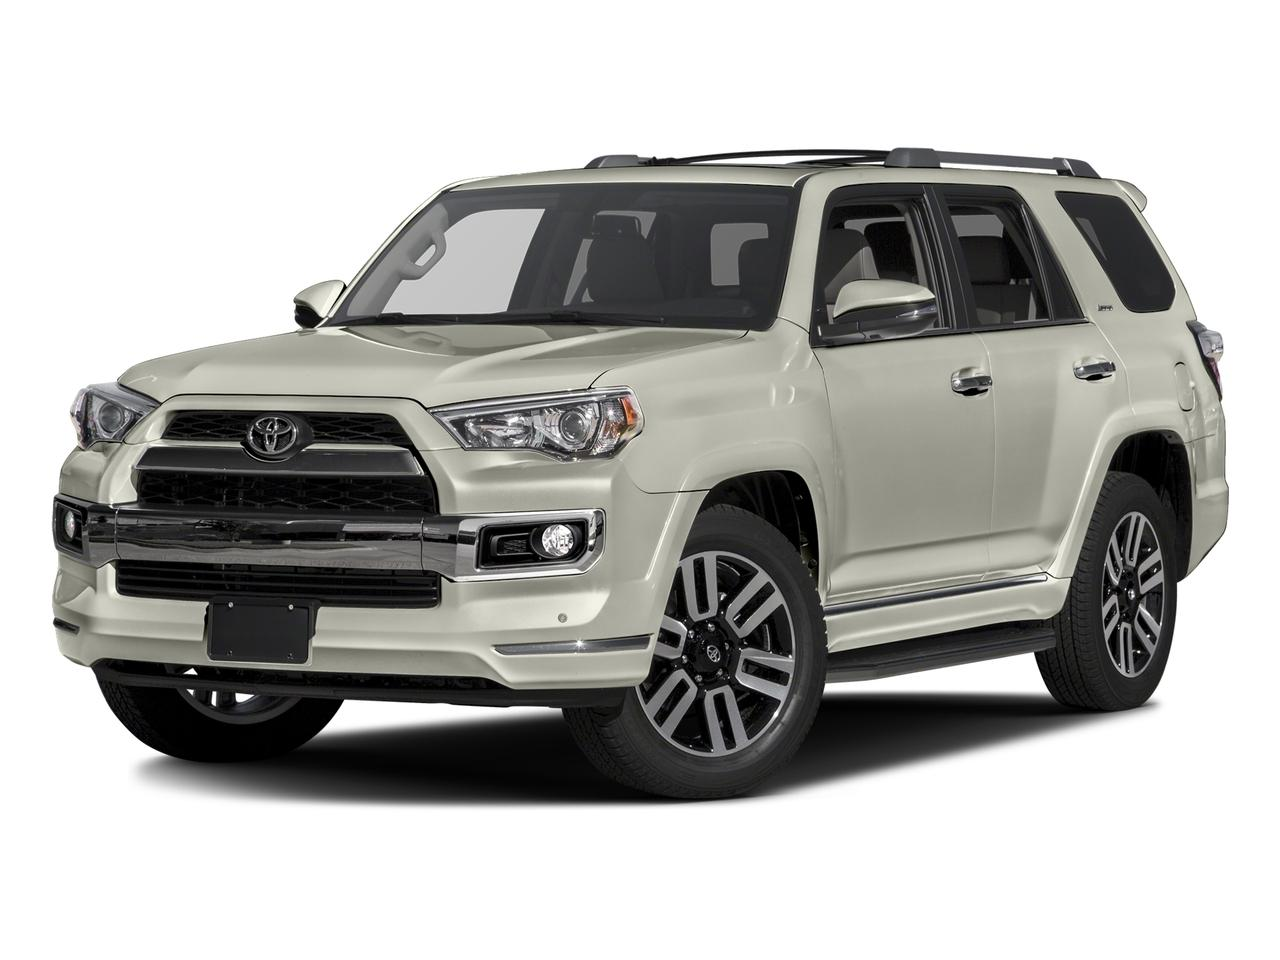 2016 Toyota 4Runner Vehicle Photo in Manassas, VA 20109